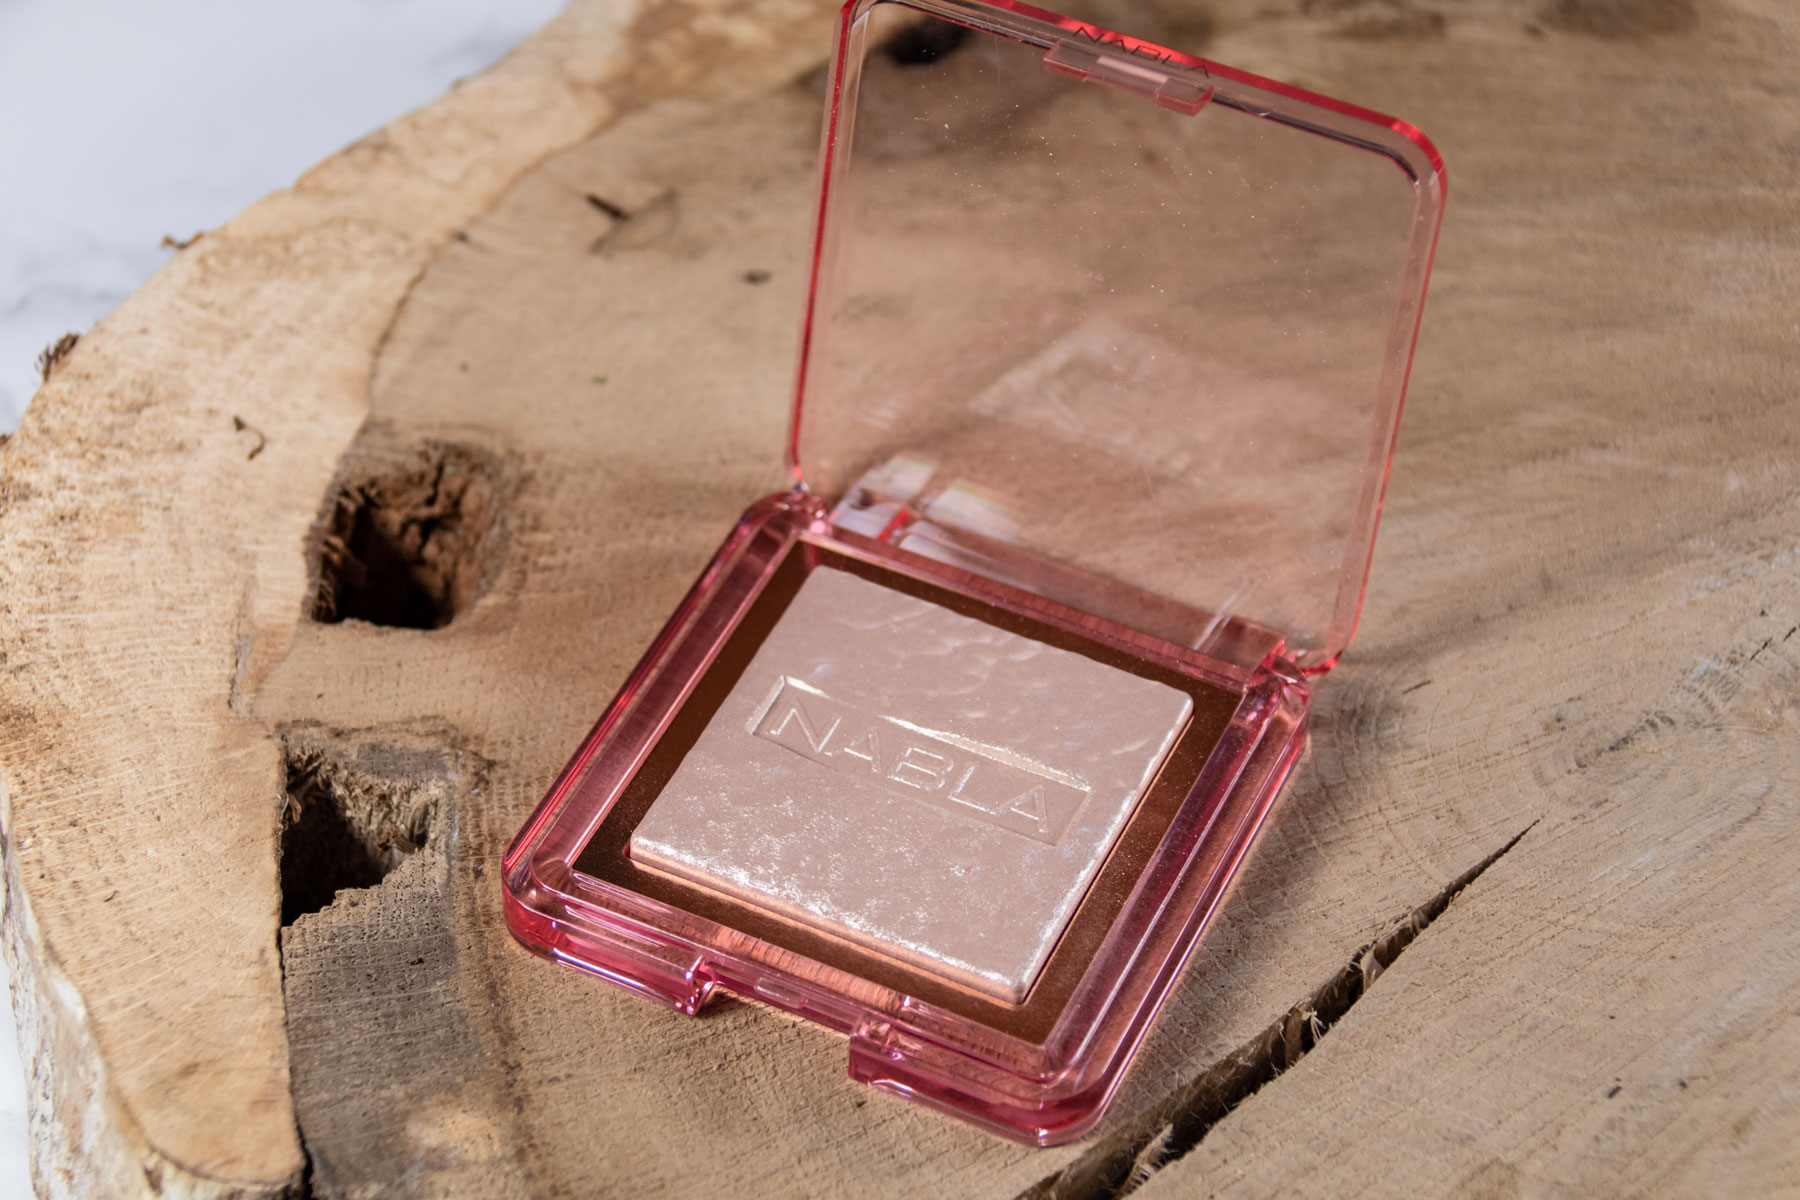 Nabla Highlighter Ozone